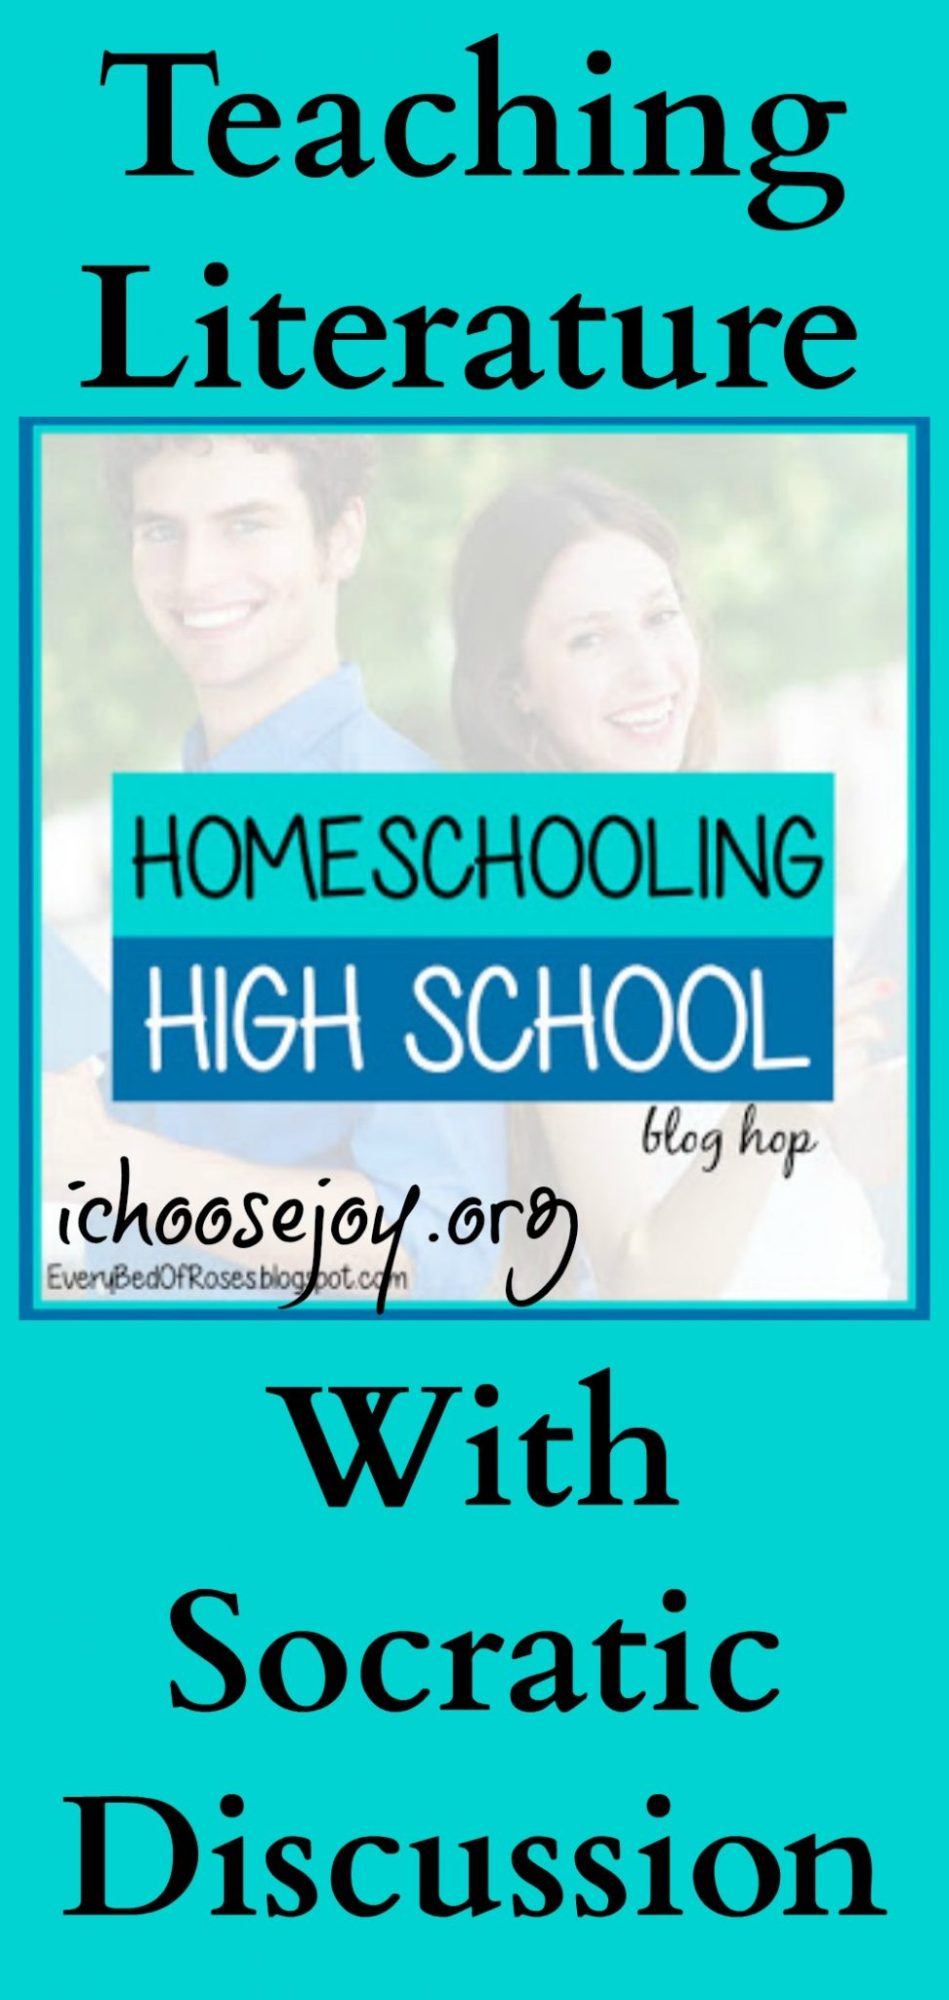 Homeschool High School: Using Socratic Discussion for Literature Studies